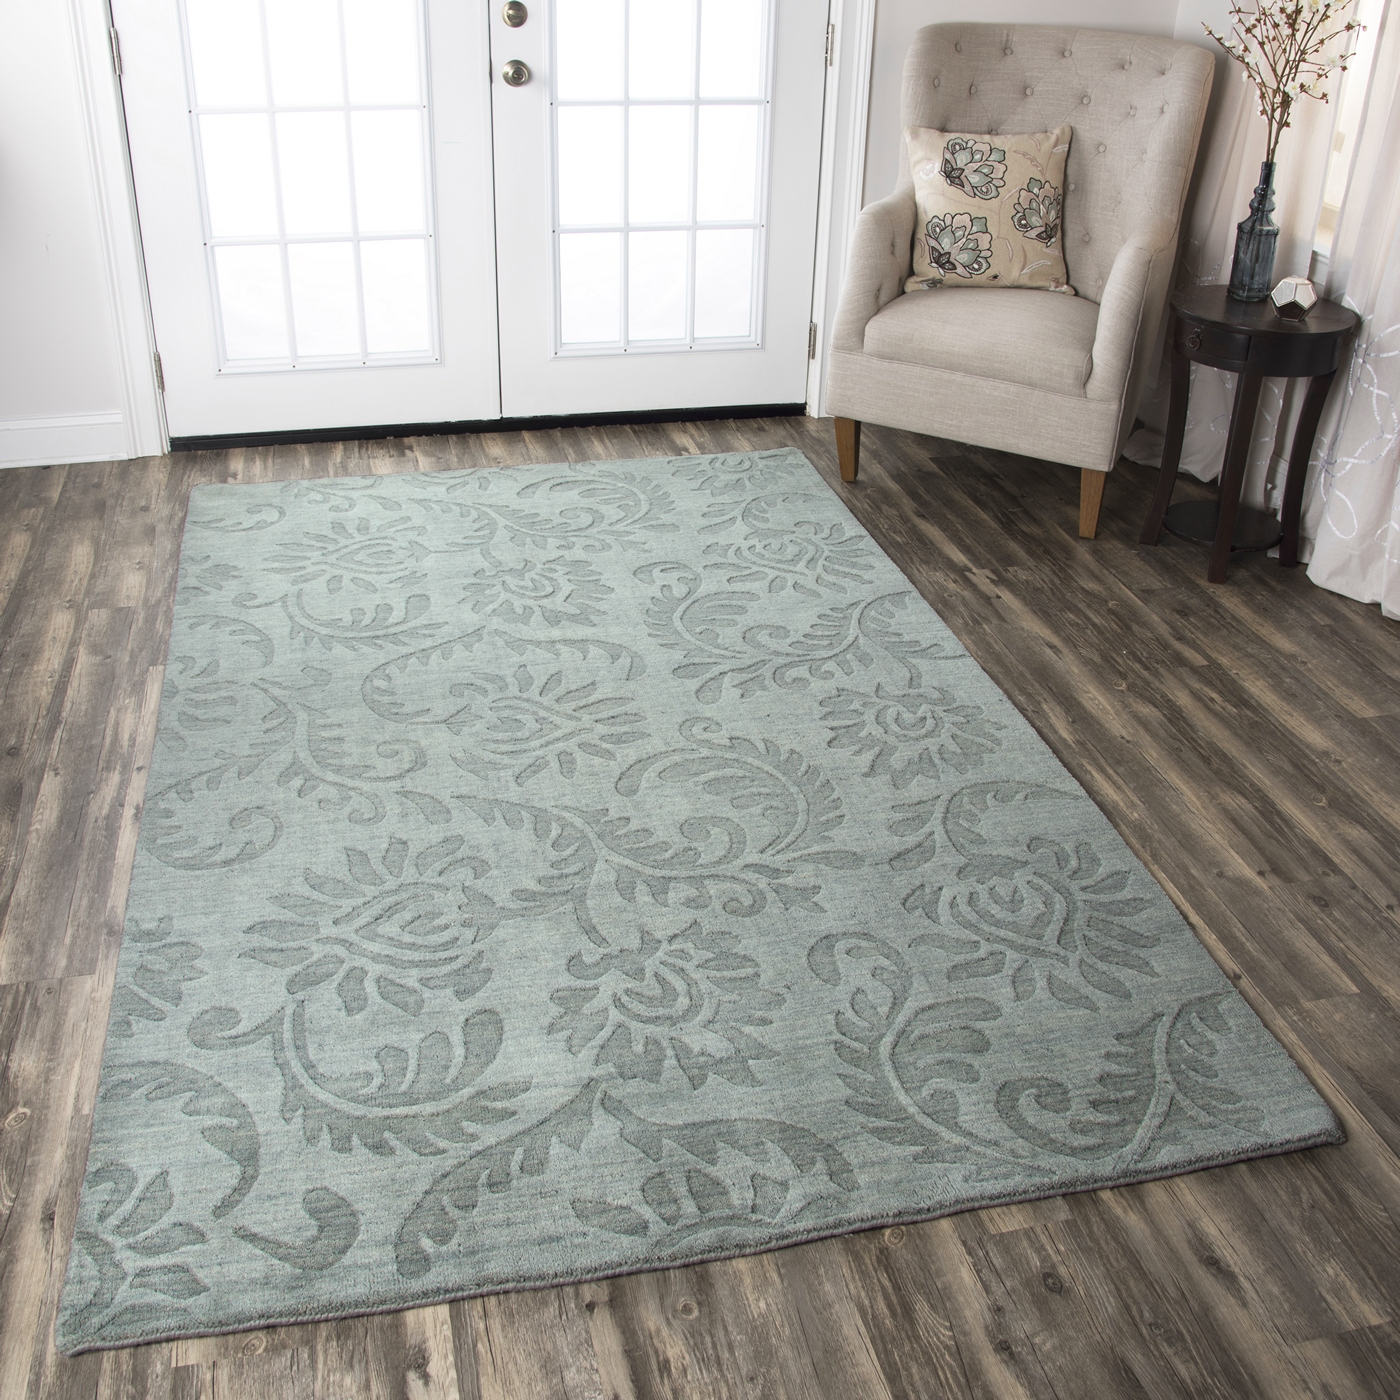 Uptown Floral Print Pattern Wool Area Rug In Grey 10 X 14